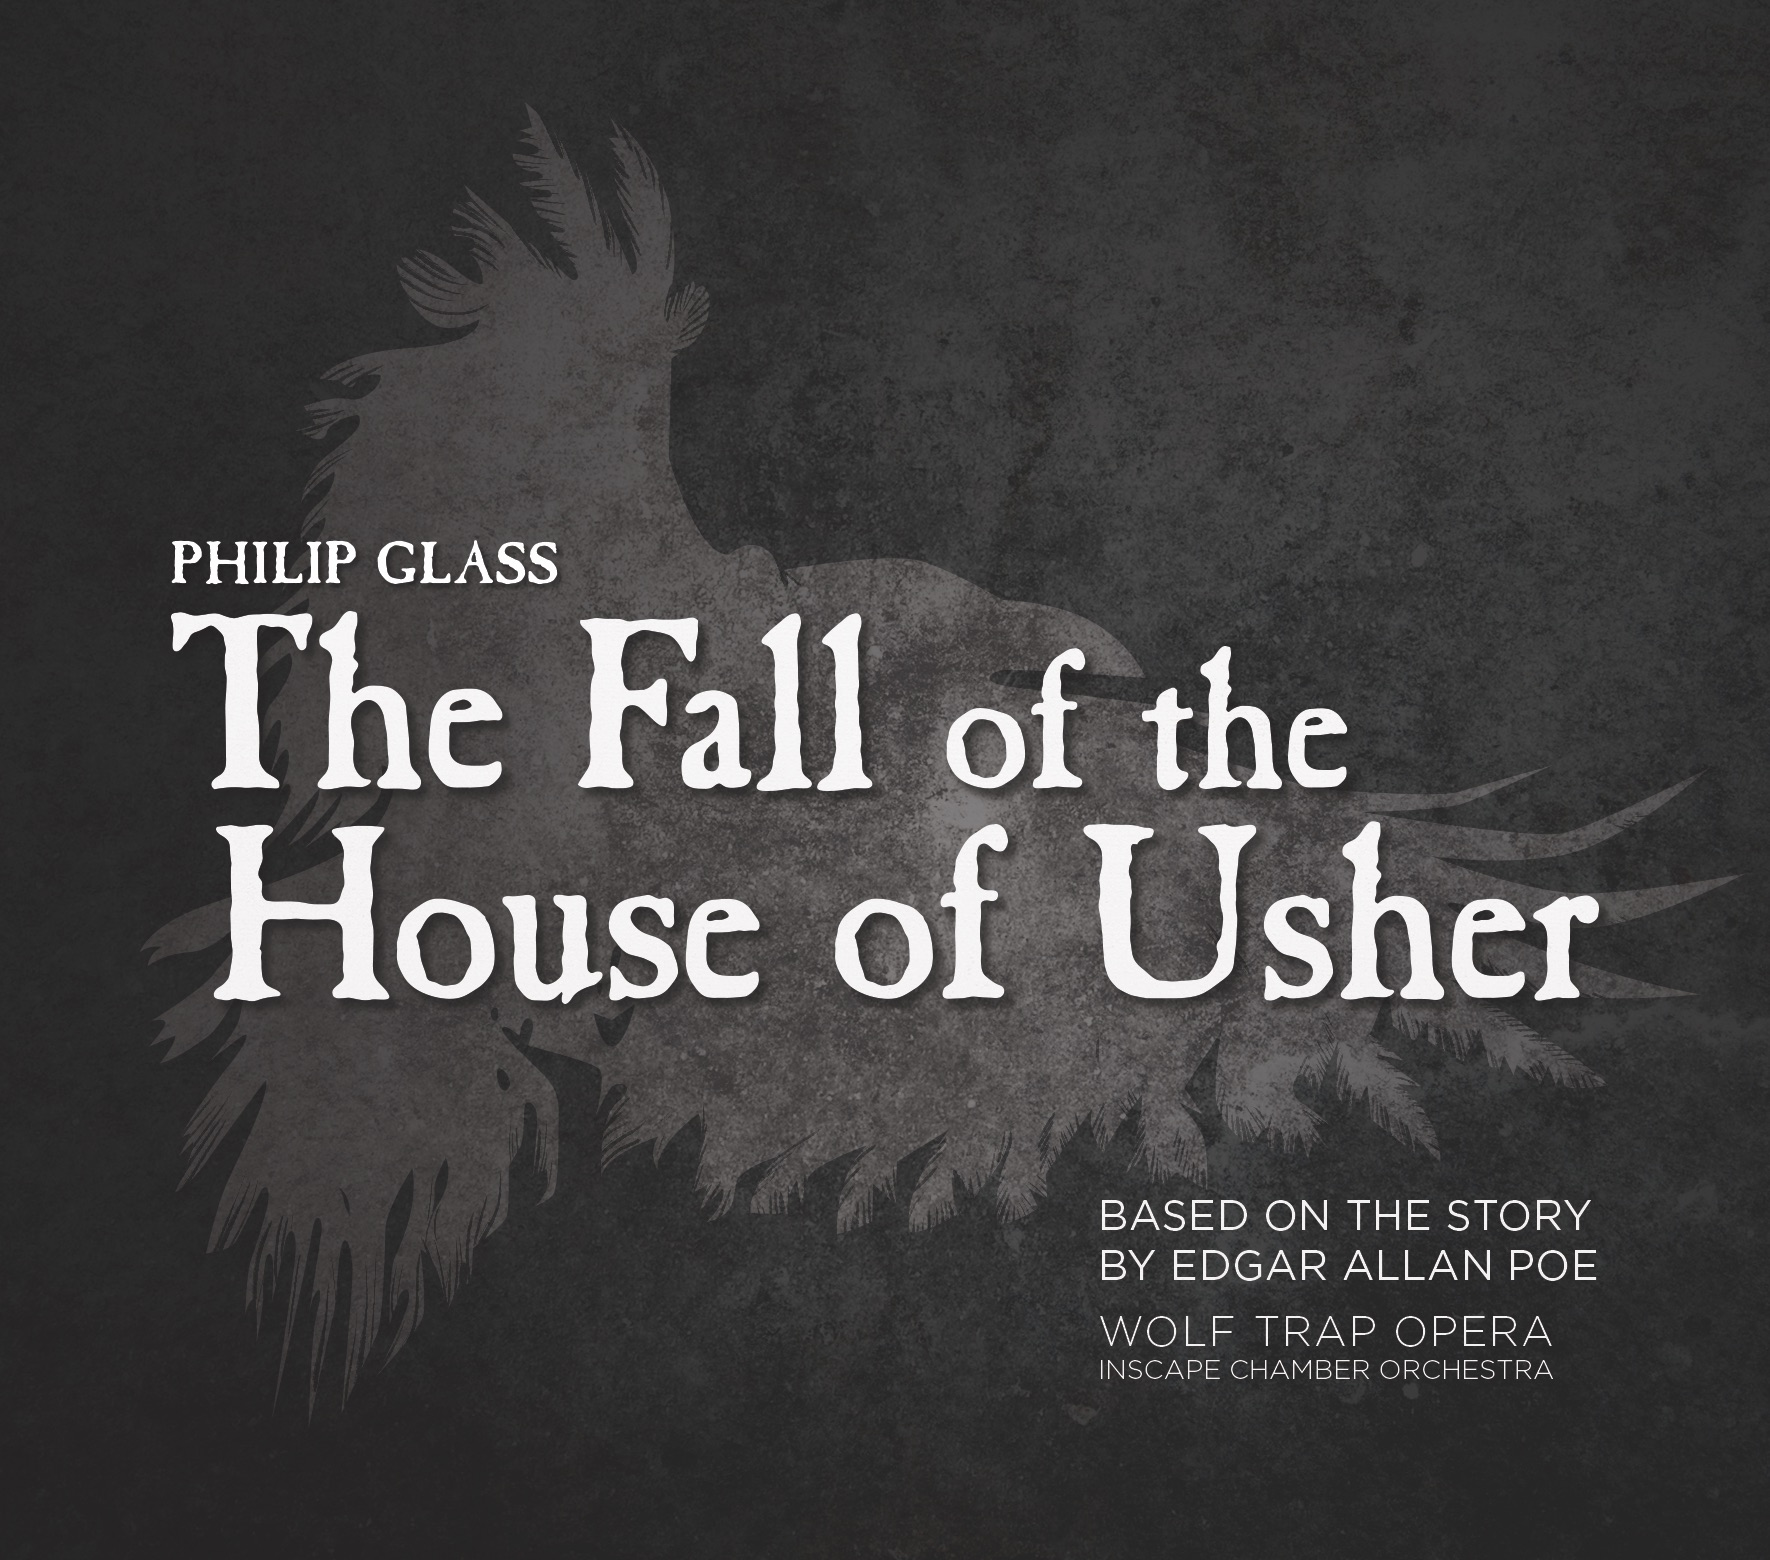 Philip Glass' The Fall of the House of Usher